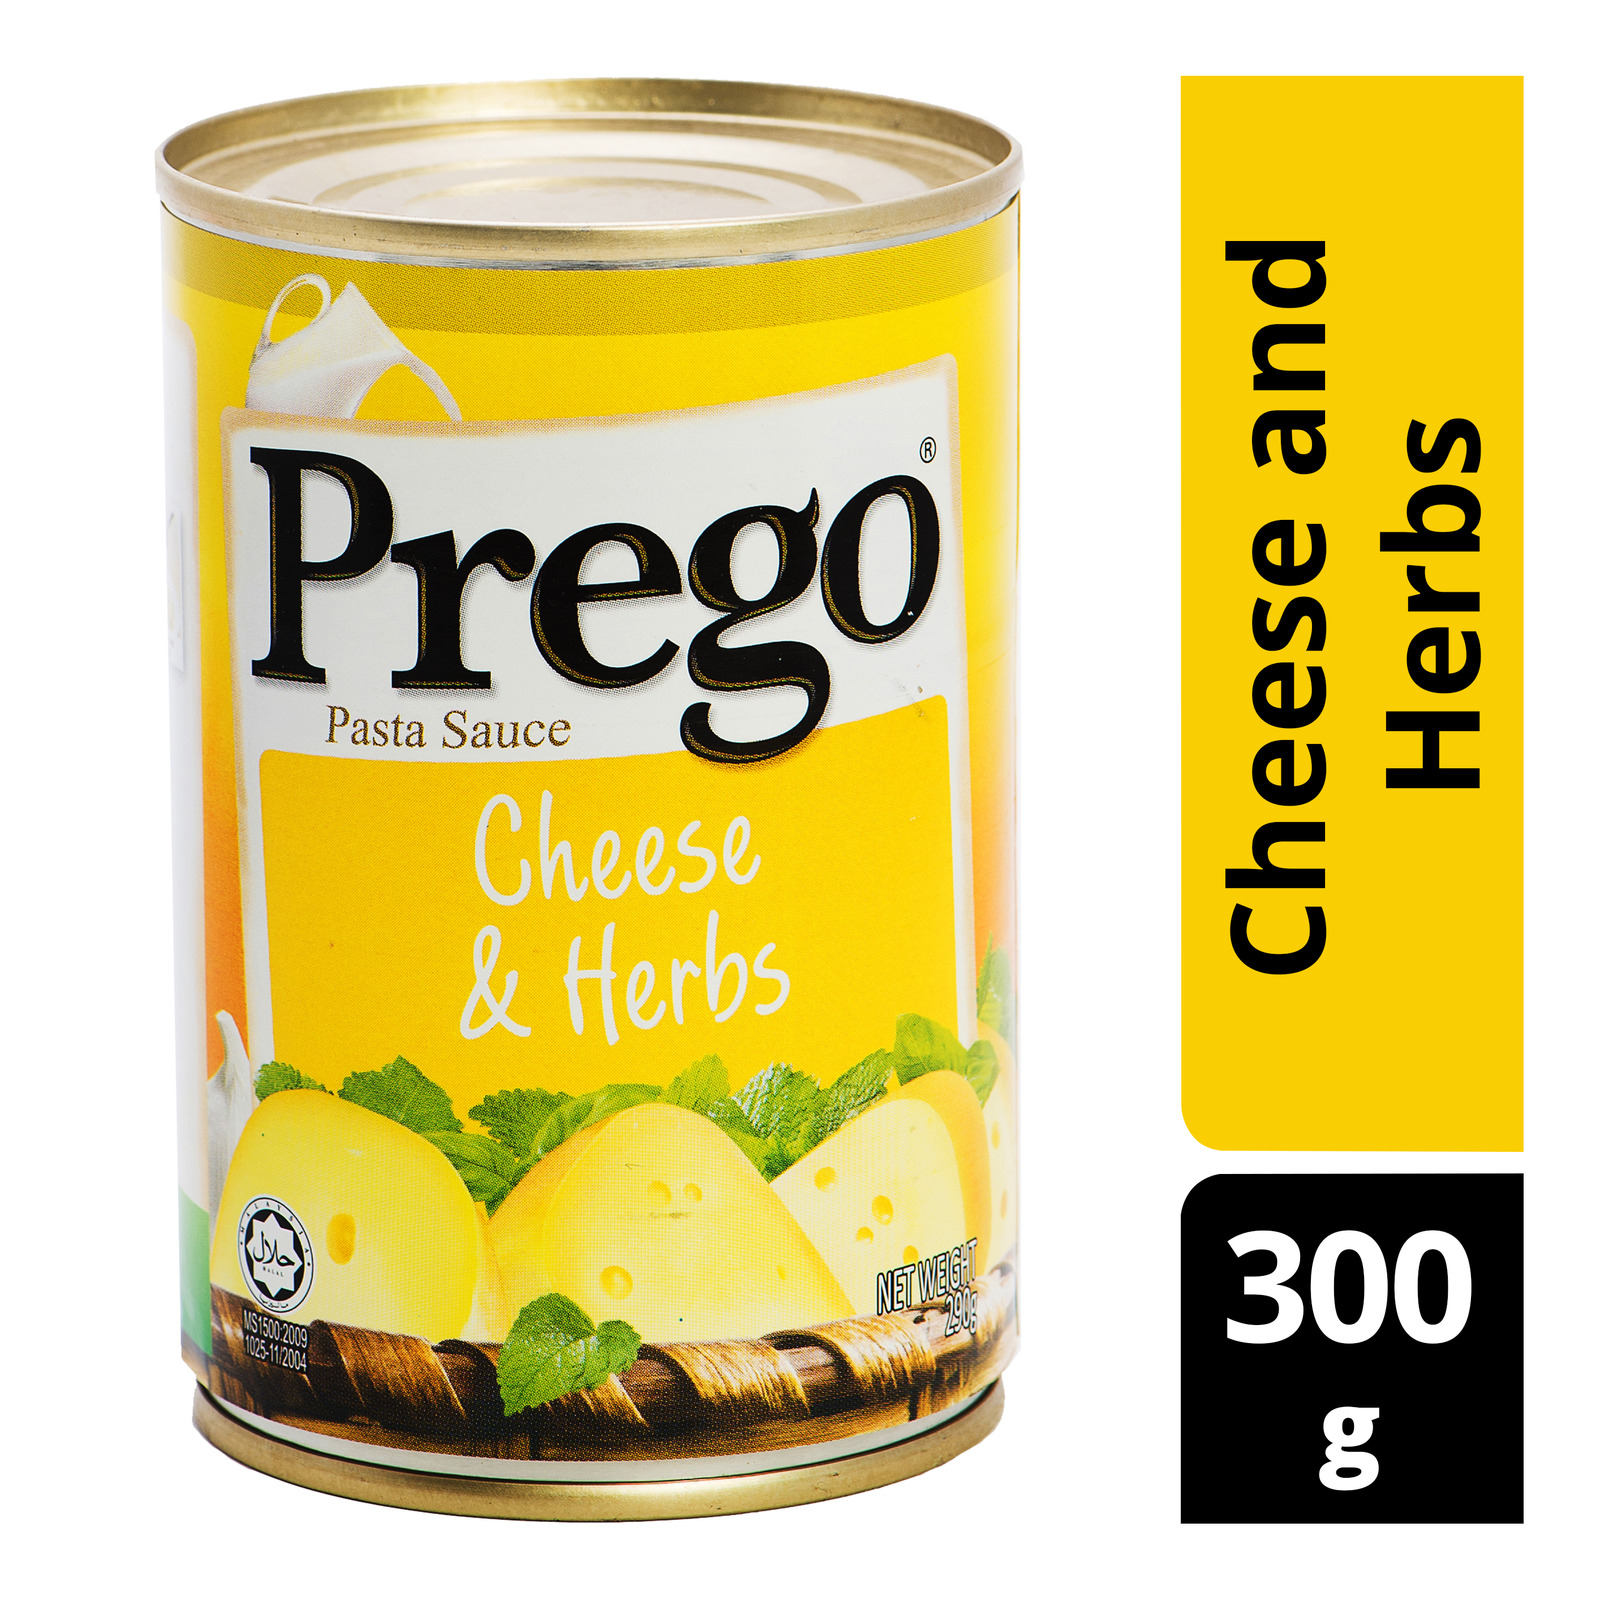 Prego Pasta Sauce - Cheese and Herbs